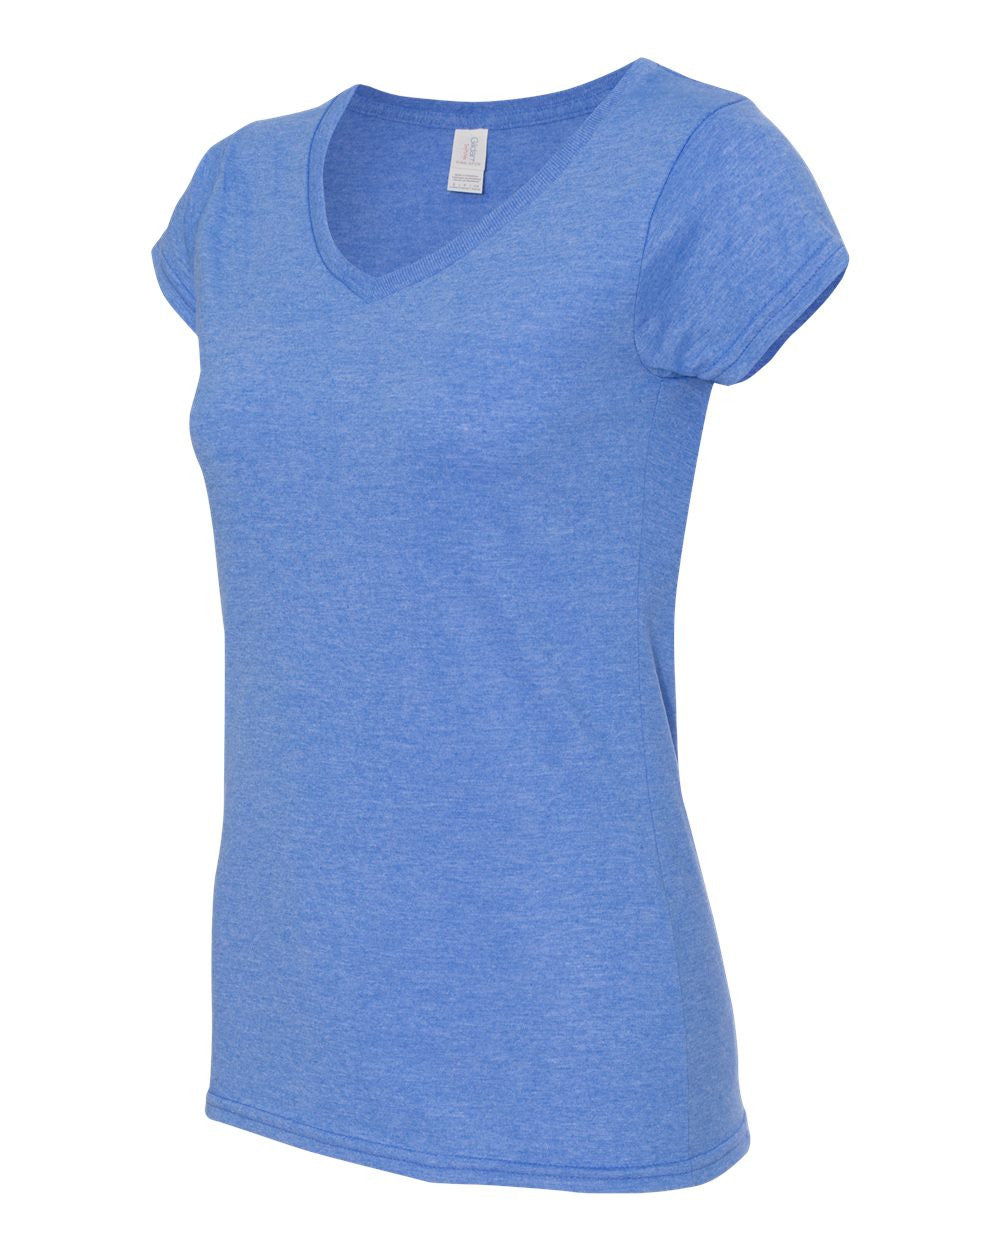 Kch2o Good For You Women's V-Neck Shirt